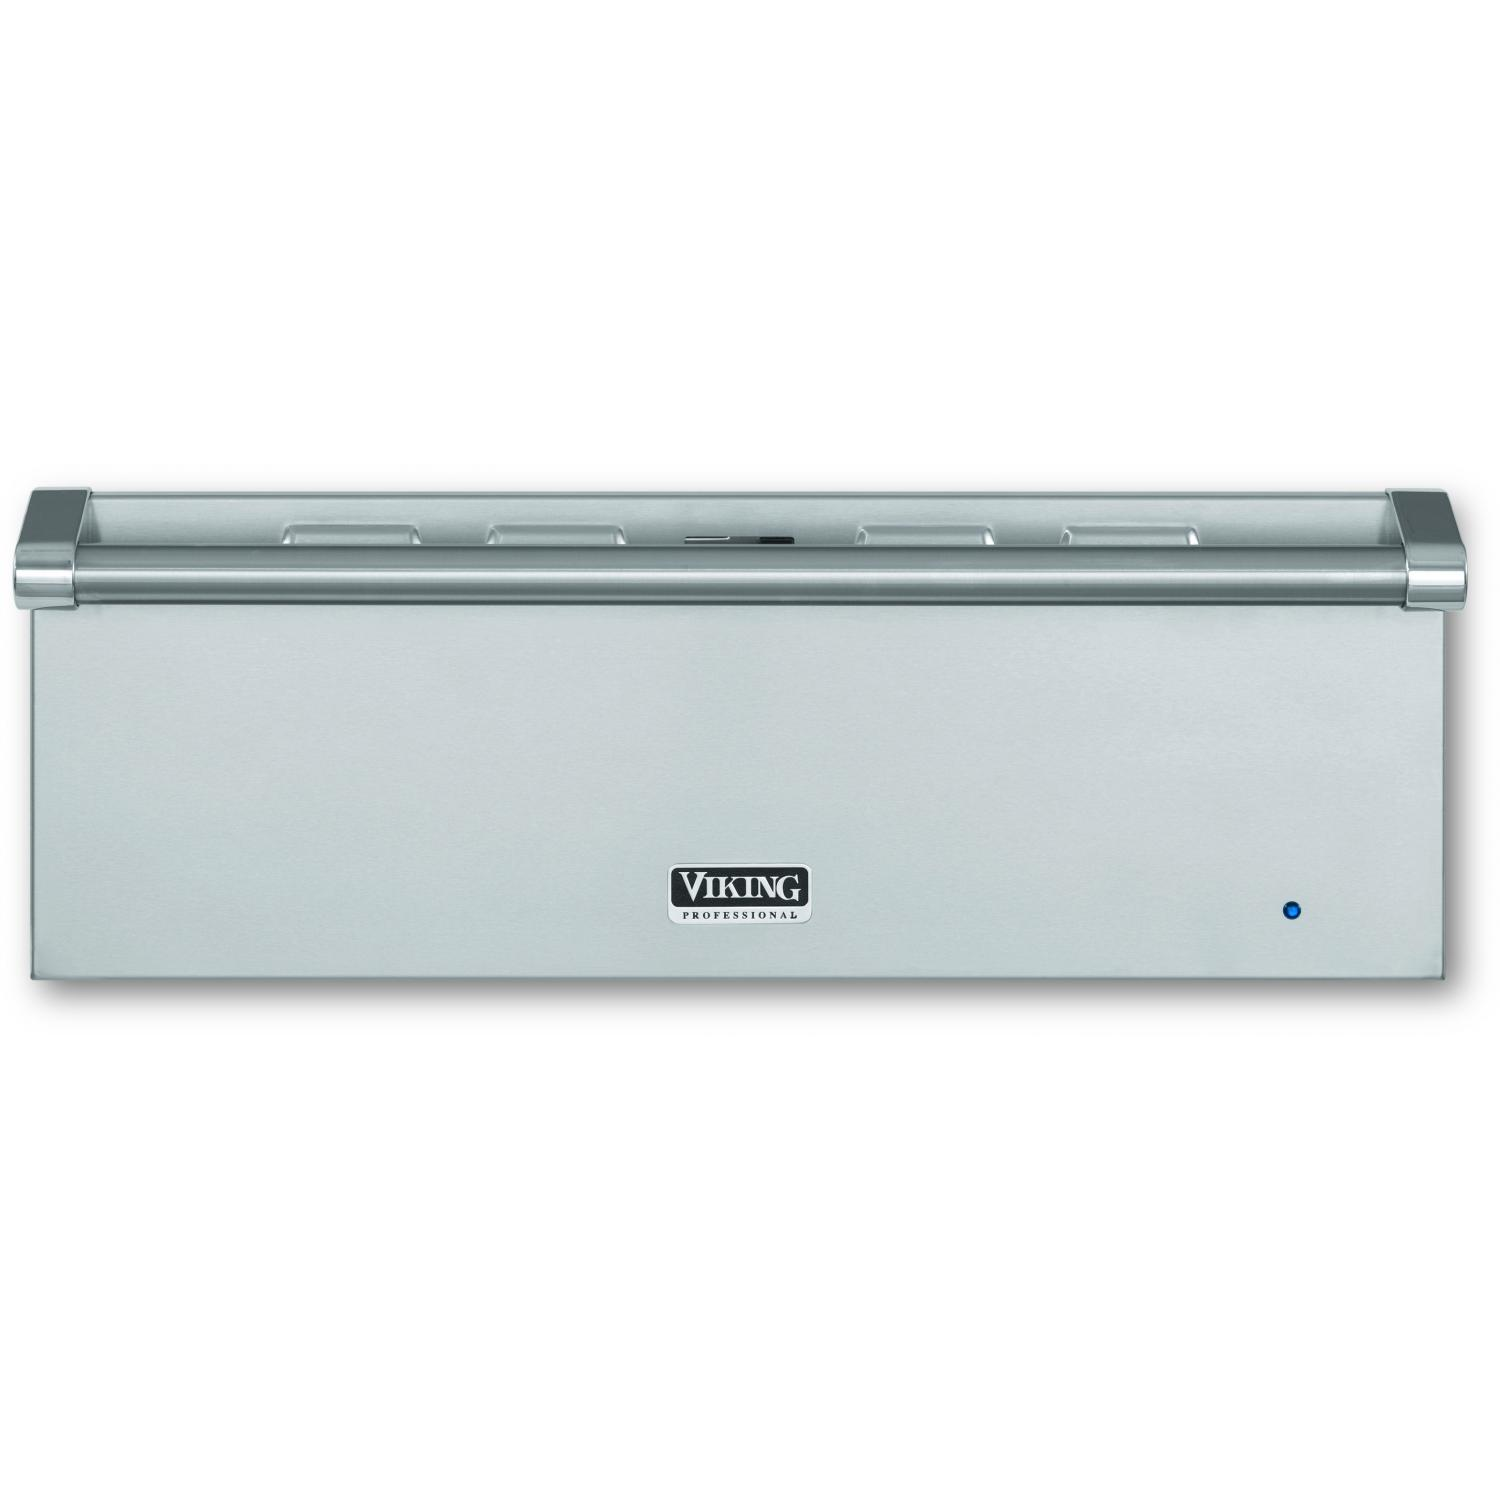 Viking VEWD530 Professional Series 30-Inch Built-In Electric Warming Drawer - Stainless Steel